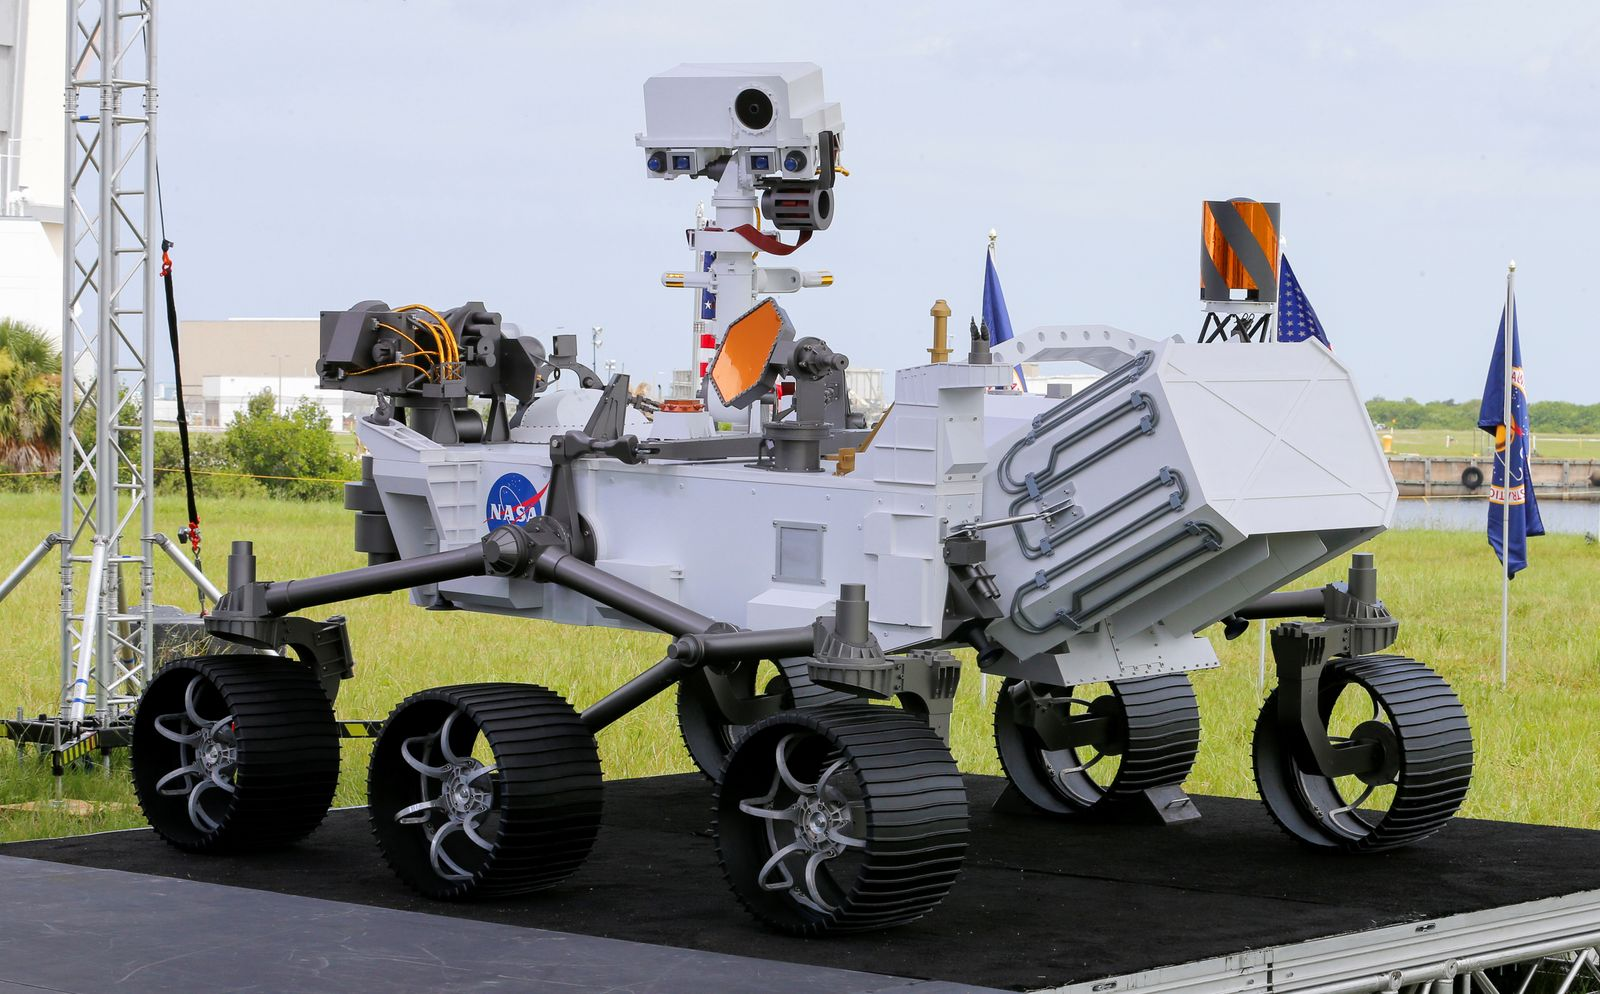 A replica of the Mars 2020 Perseverance Rover is shown during a press conference, at the Kennedy Space Center in Cape Canaveral